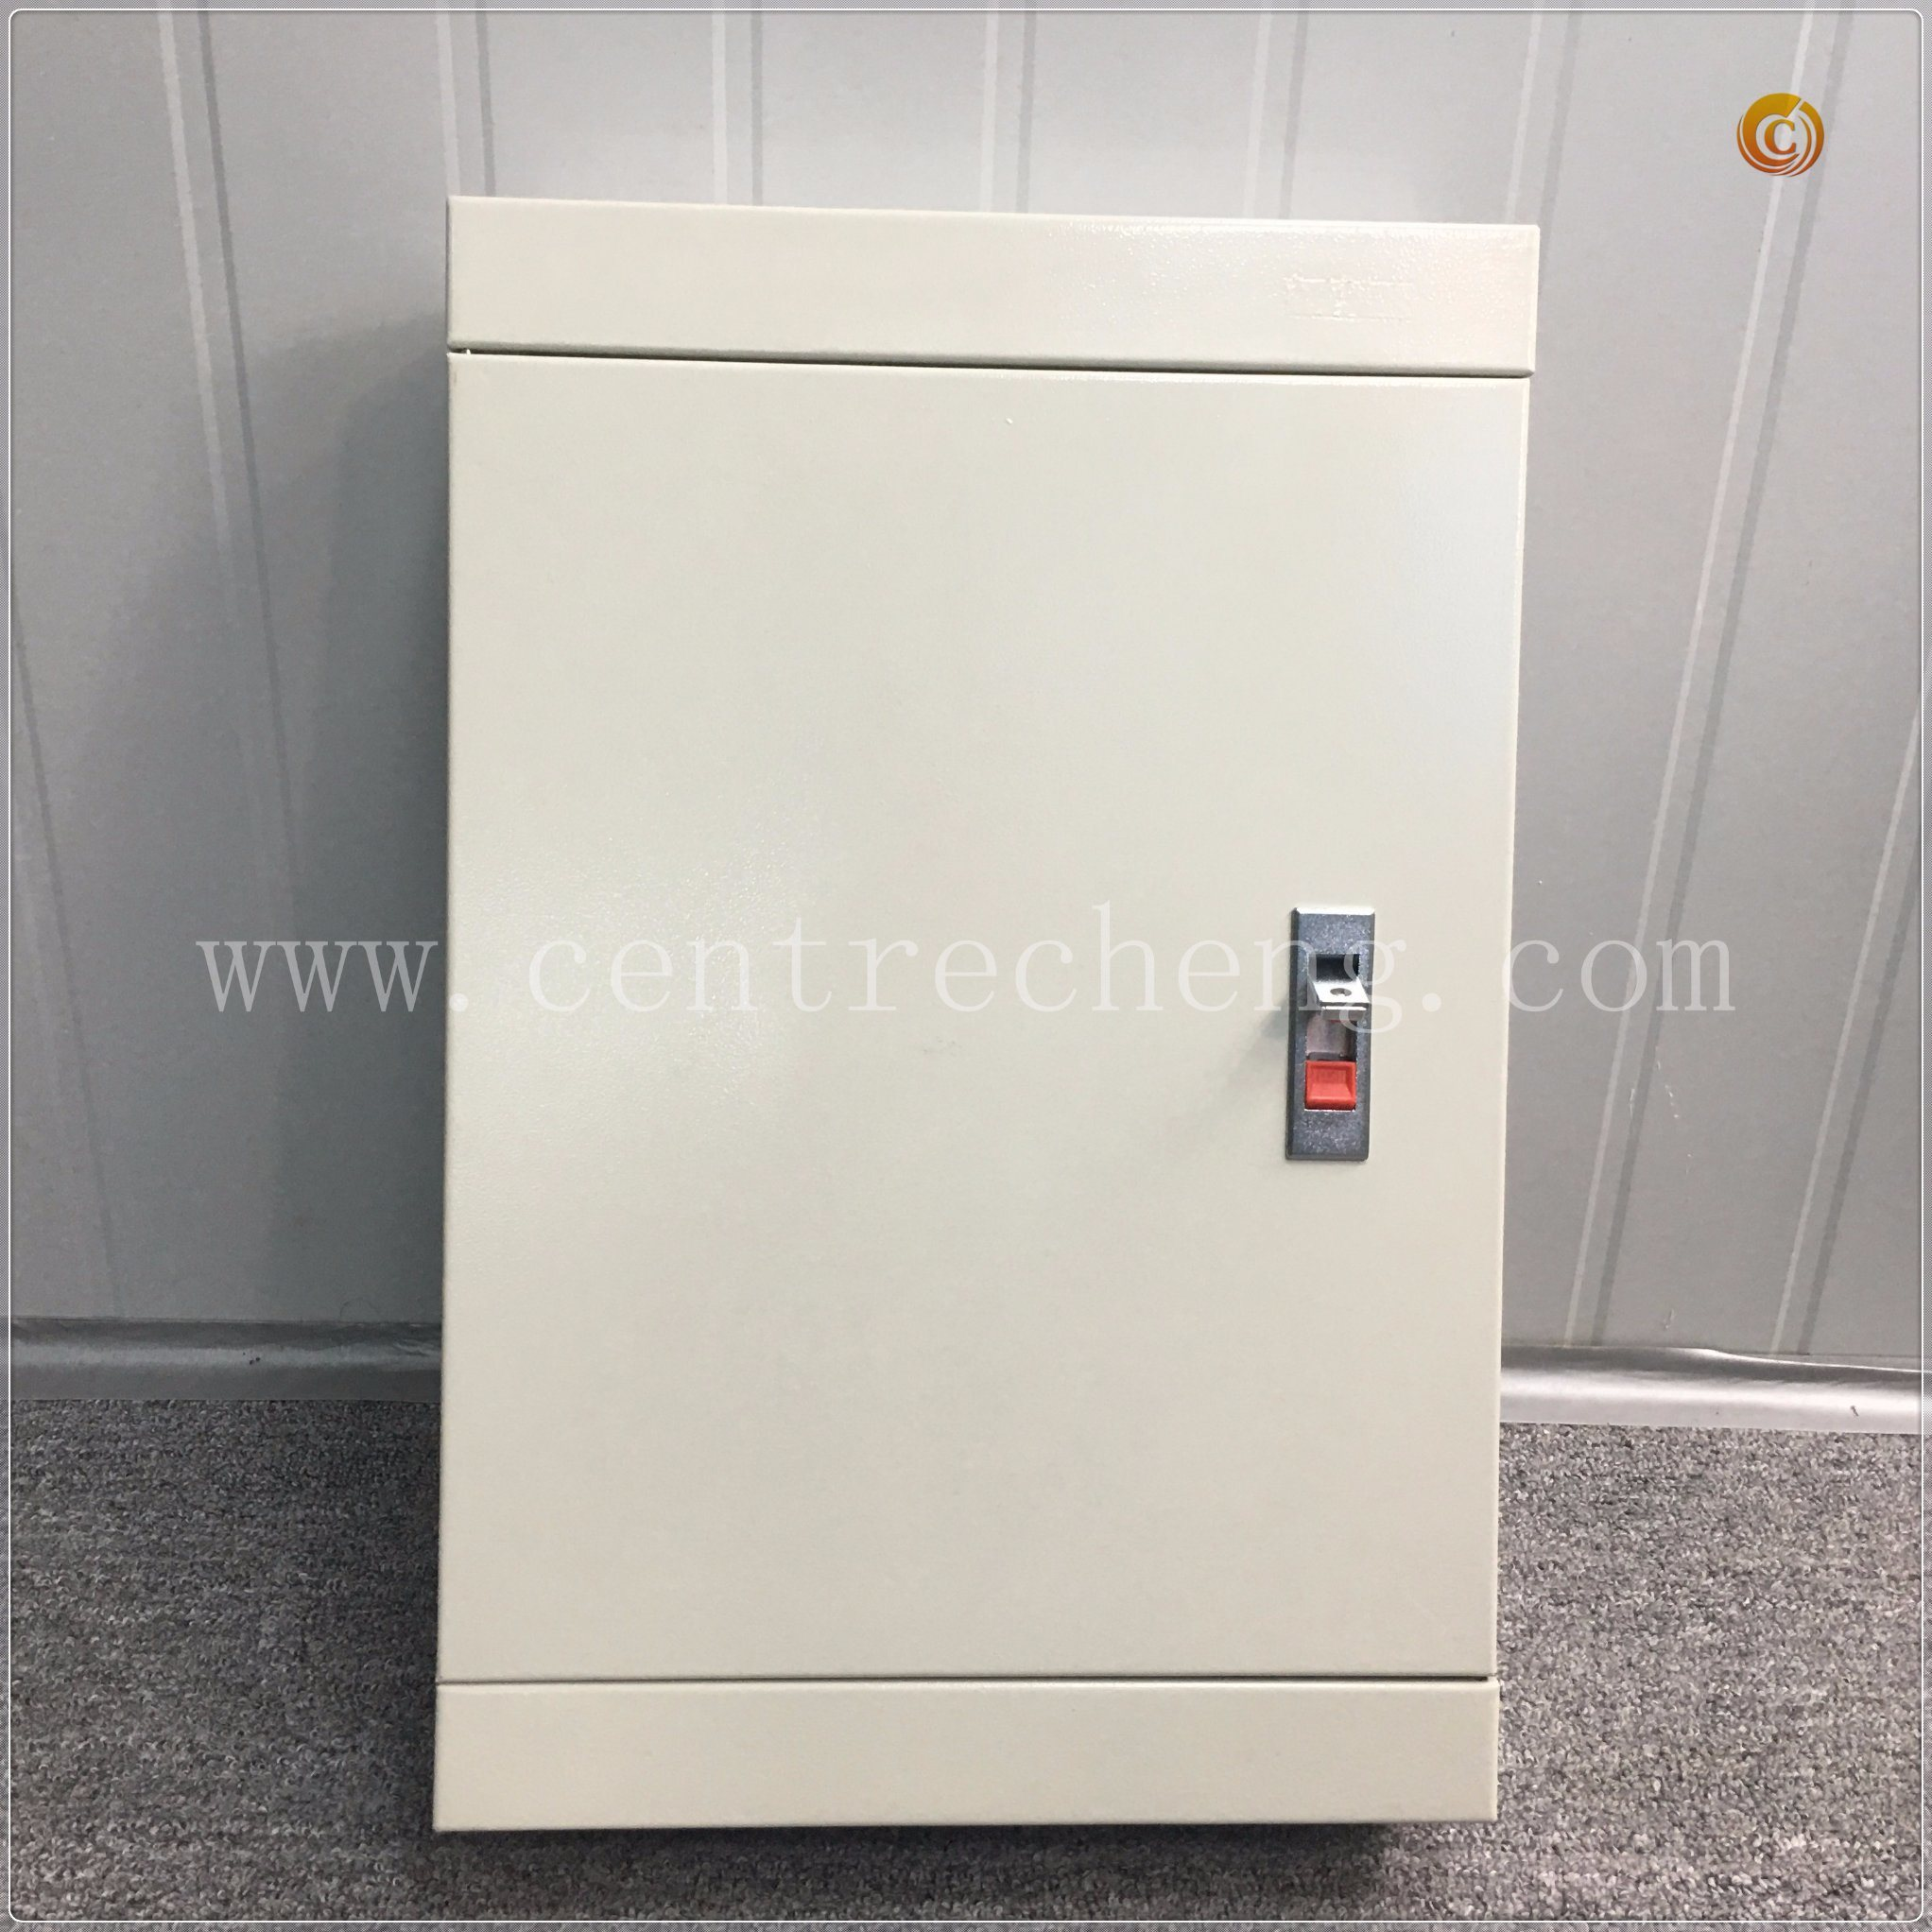 China Metal Circuit Breaker Box Industry Type Photos & Pictures ...